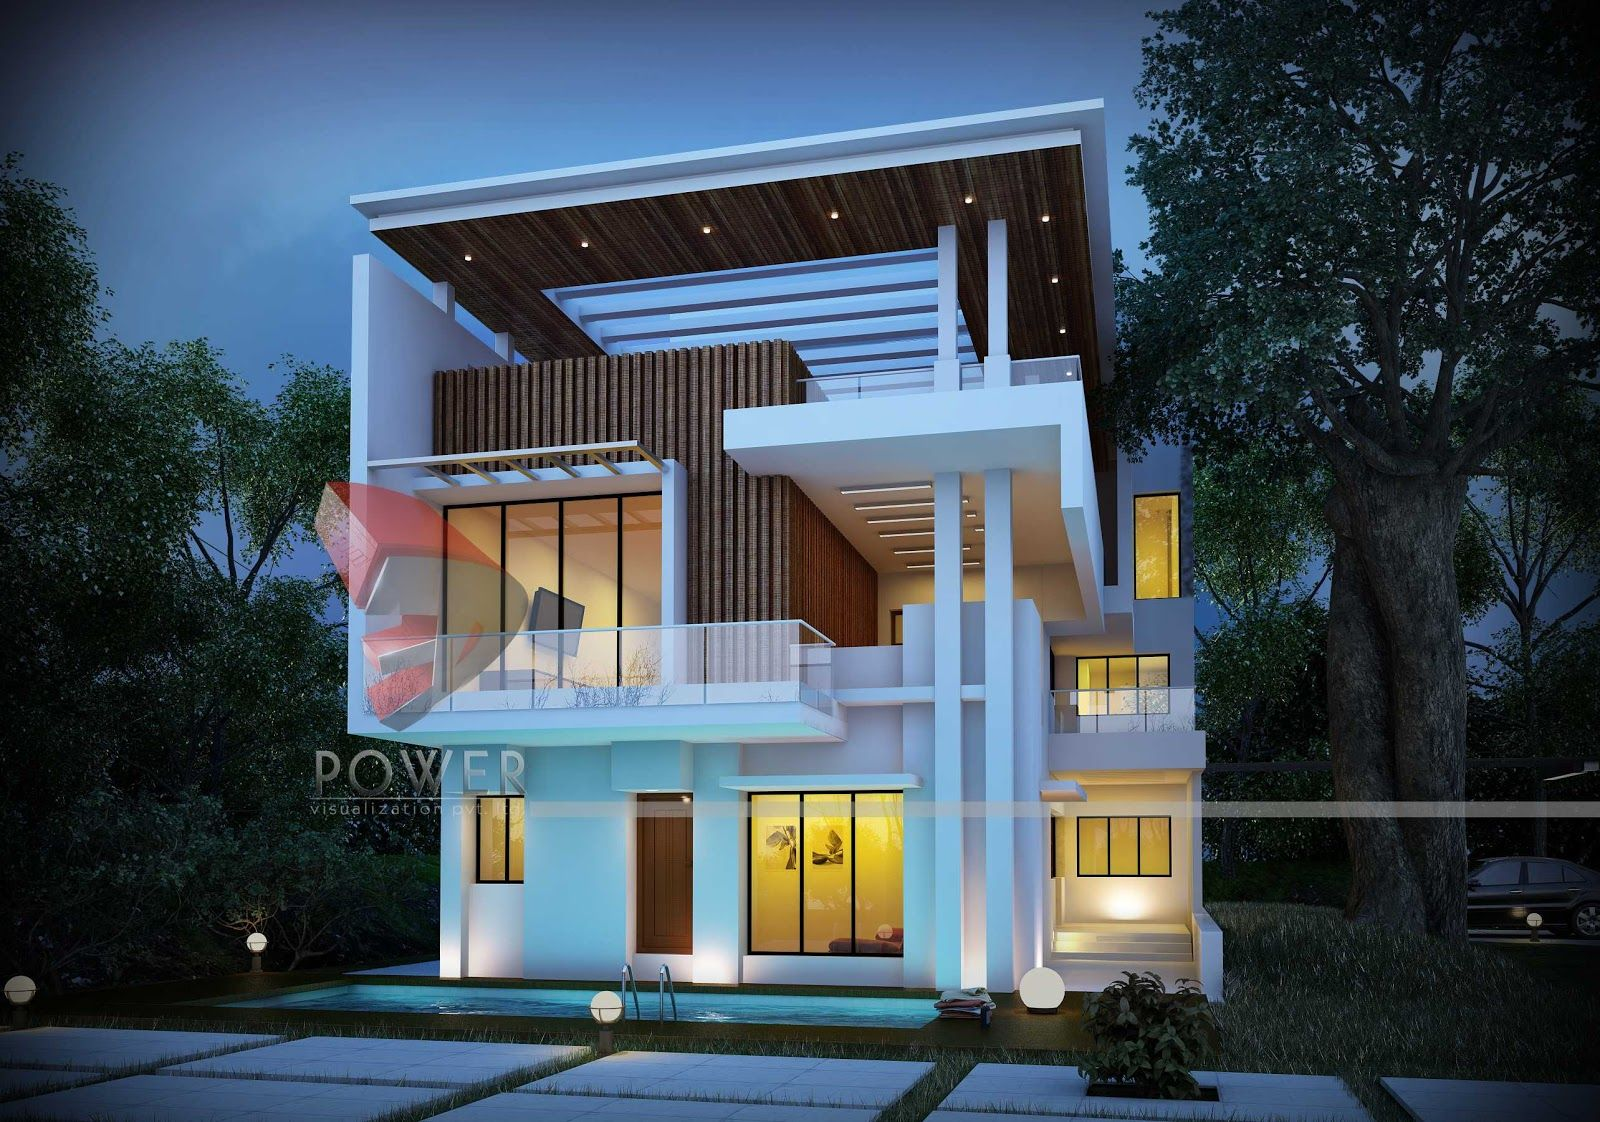 Modern architecture 3d architecture design modern architecture house designs miscellanea for Architecture house design ideas